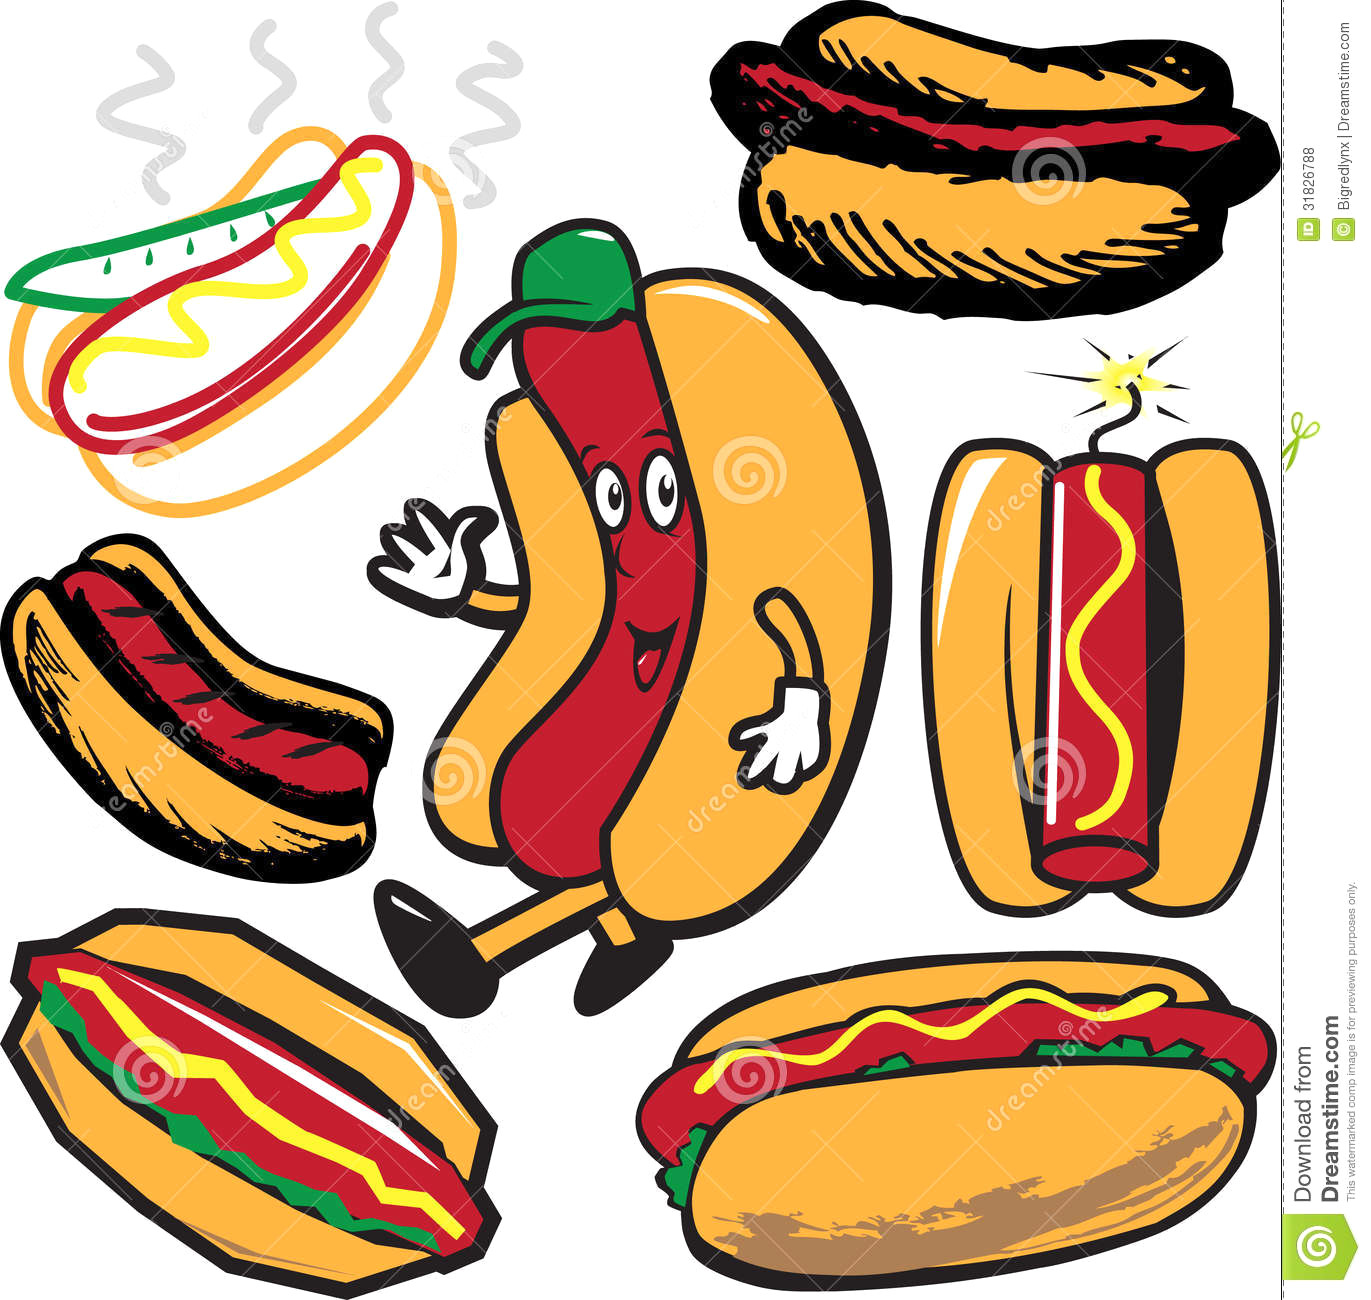 1371x1300 Relish Clipart Hot Dogs Clip Art Collection Dog Symbols Icons